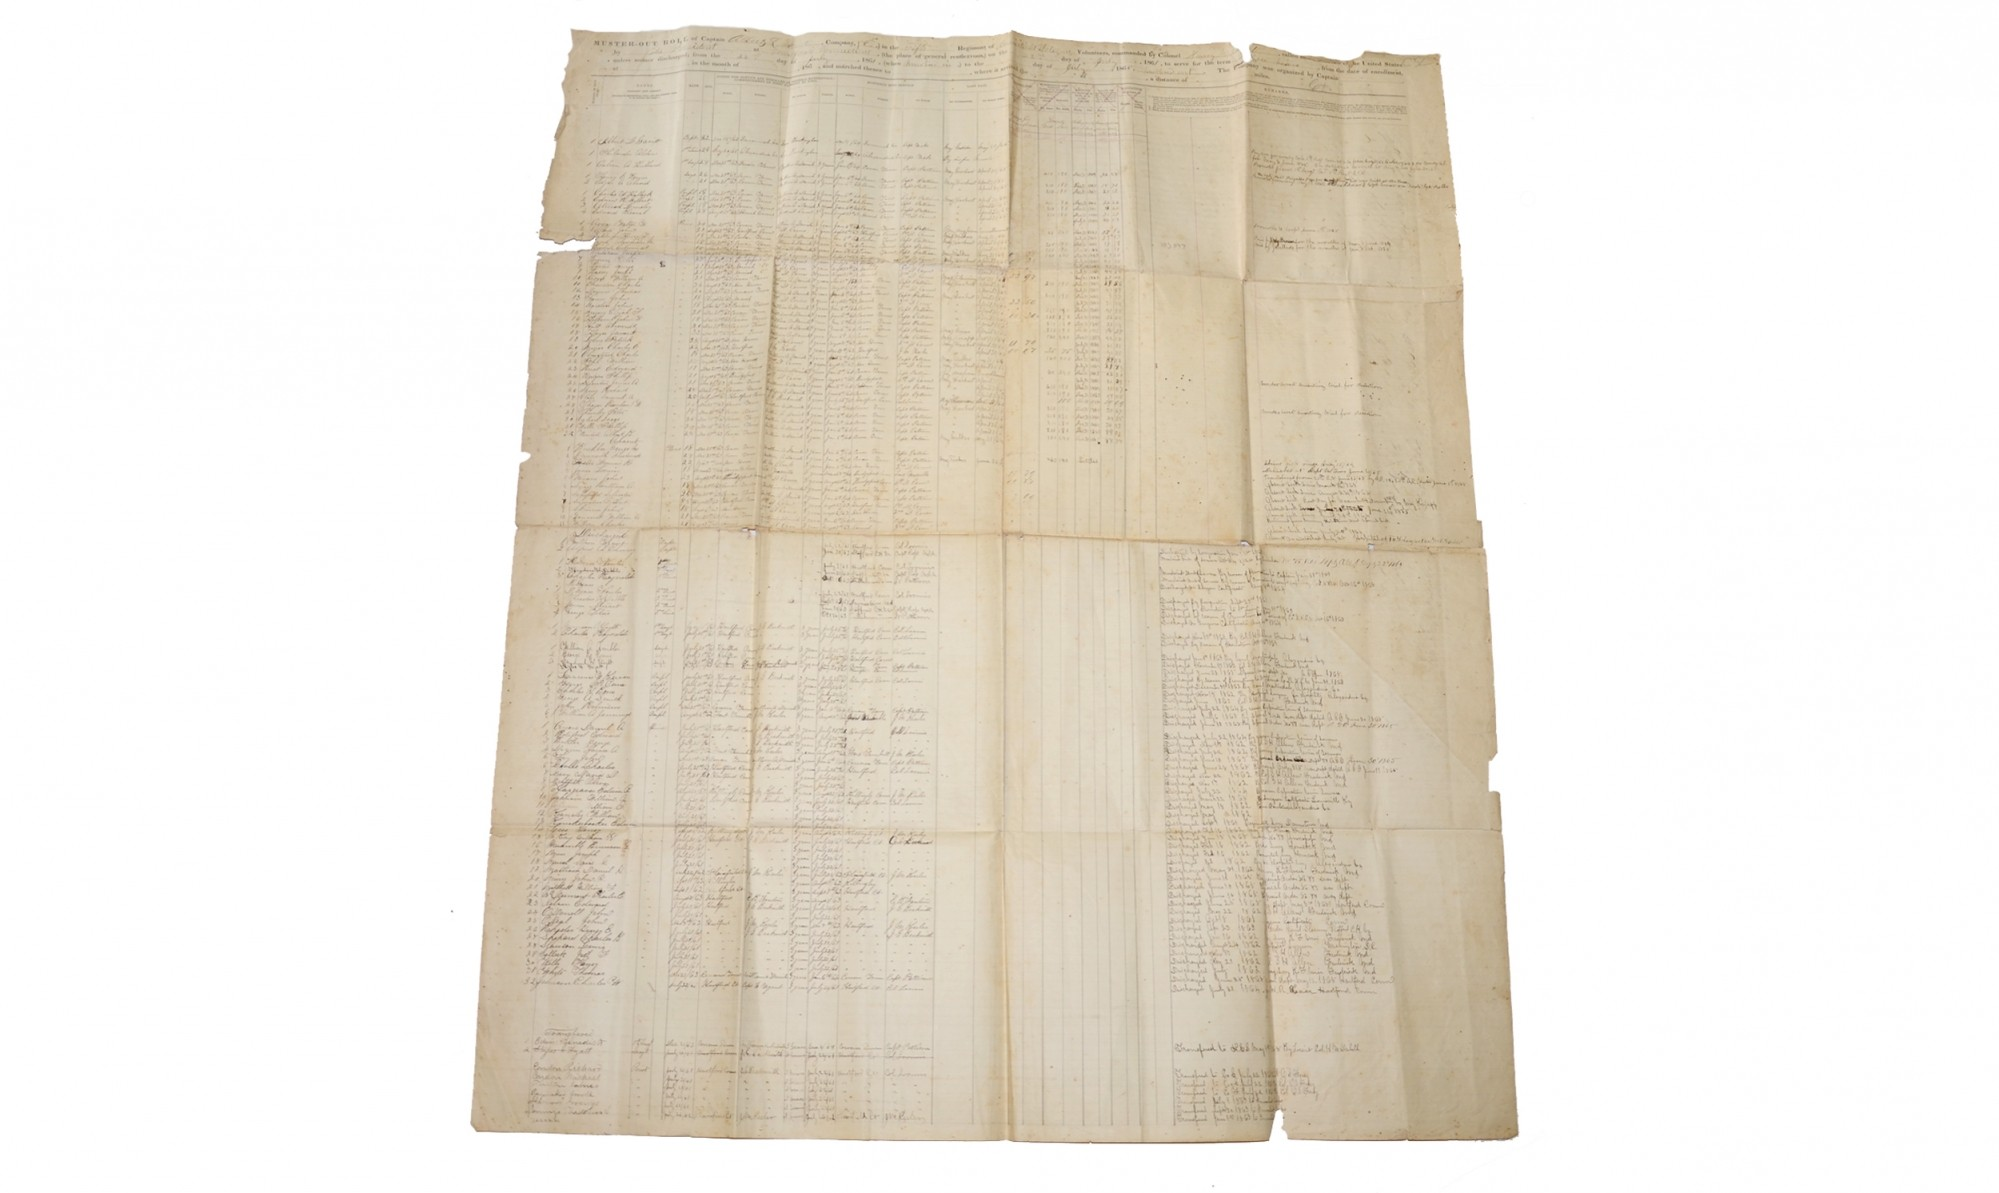 UNION MUSTER-OUT ROLL FOR CO. E, 5th CONNECTICUT VOLUNTEER INFANTRY REGIMENT